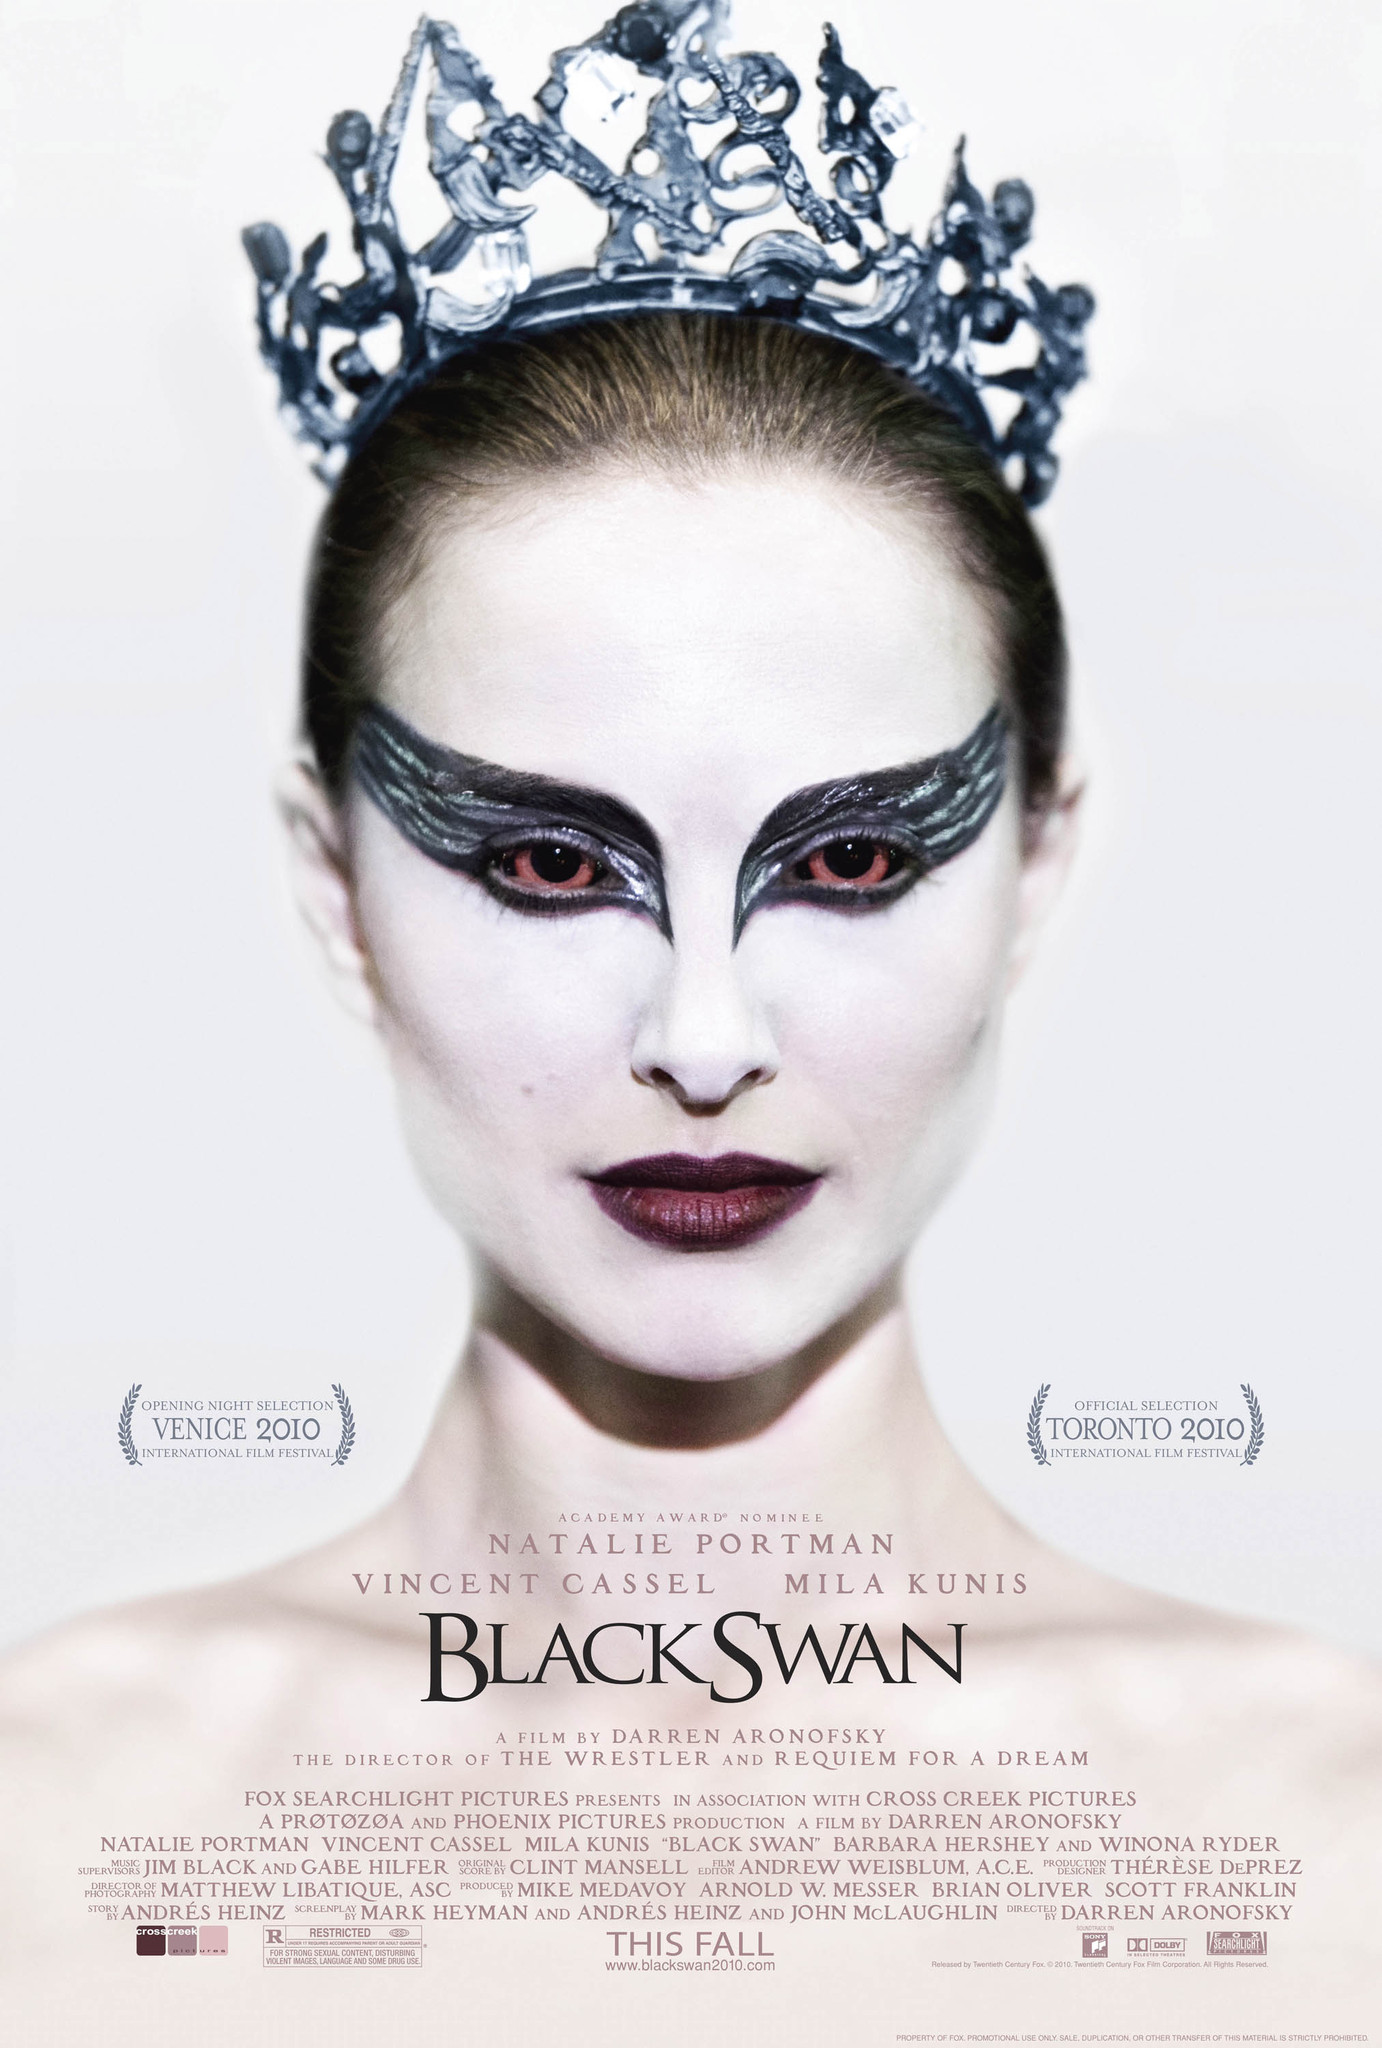 Black Swan (2010) - Directed by: Darren AronofskyStarring: Natalie Portman, Mila Kunis, Vincent CassellRated: RRunning Time: 1h 48mTMM Score: 5 Stars (loved it)STRENGTHS: Acting, CinematographyWEAKNESSES: Weak Dialogue in Moments